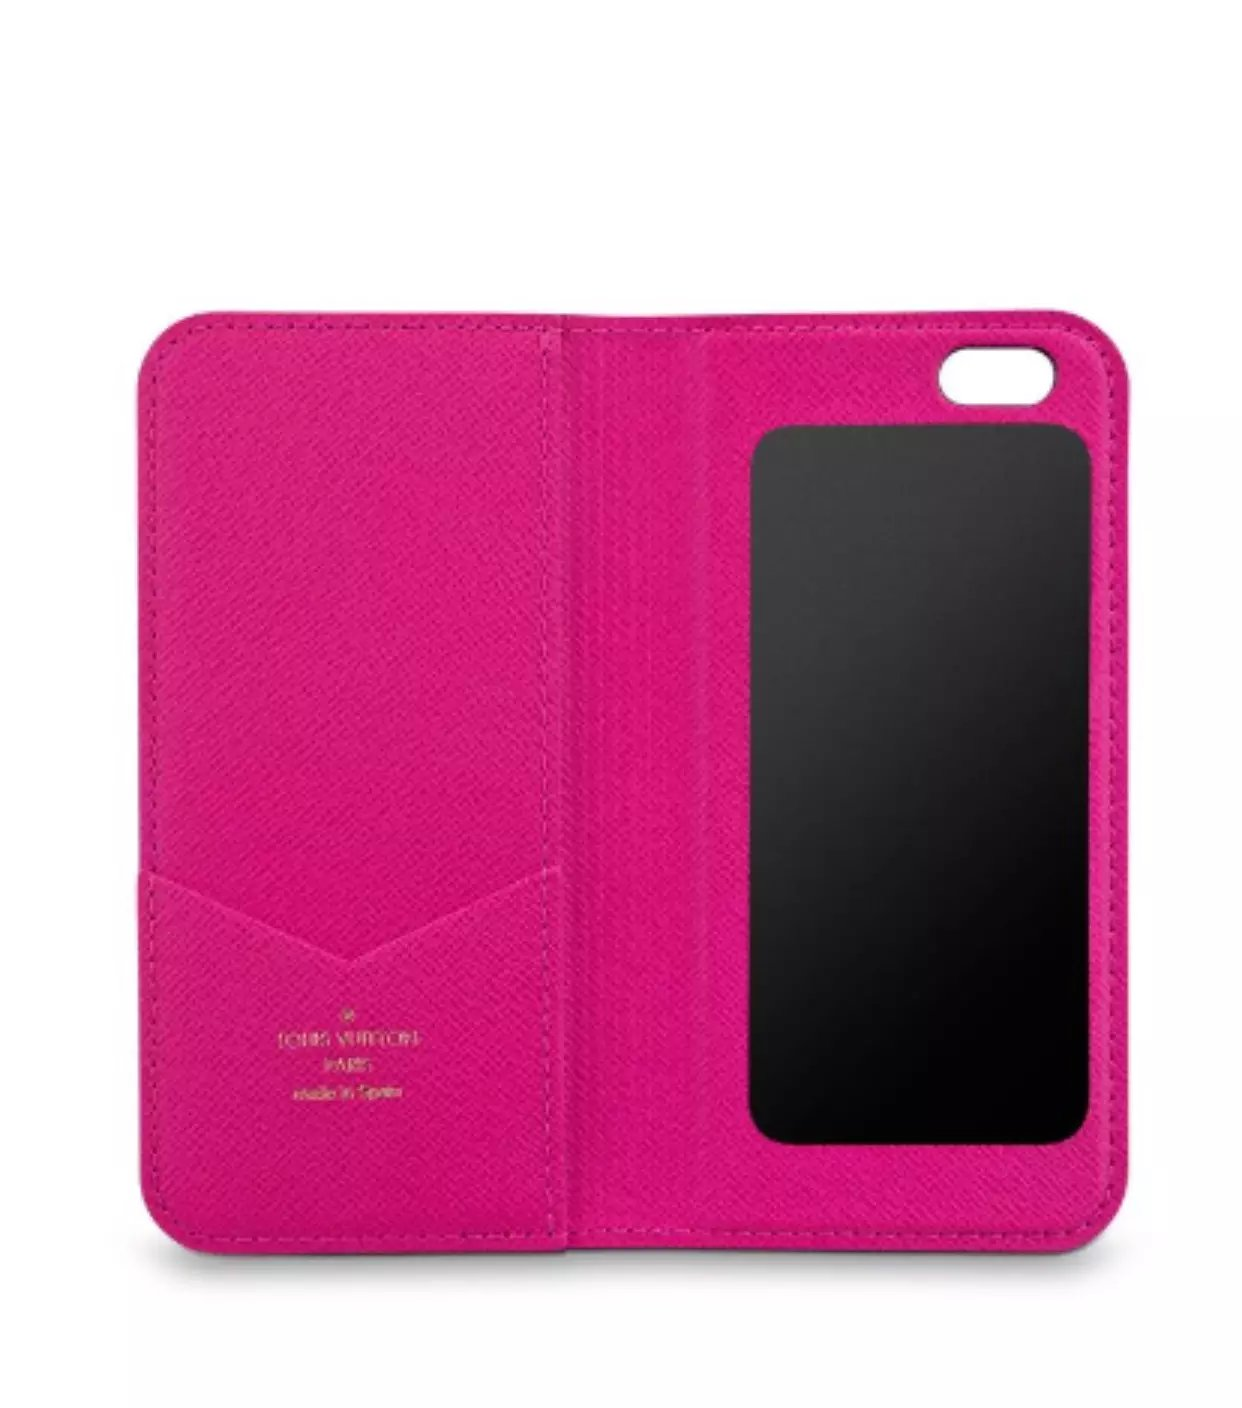 iphone hülle leder iphone hüllen günstig Louis Vuitton iphone 8 hüllen holz cover iphone 8 iphone nachfolger neues iphone iphonne 8 pinke iphone 8 hülle das iphone 8